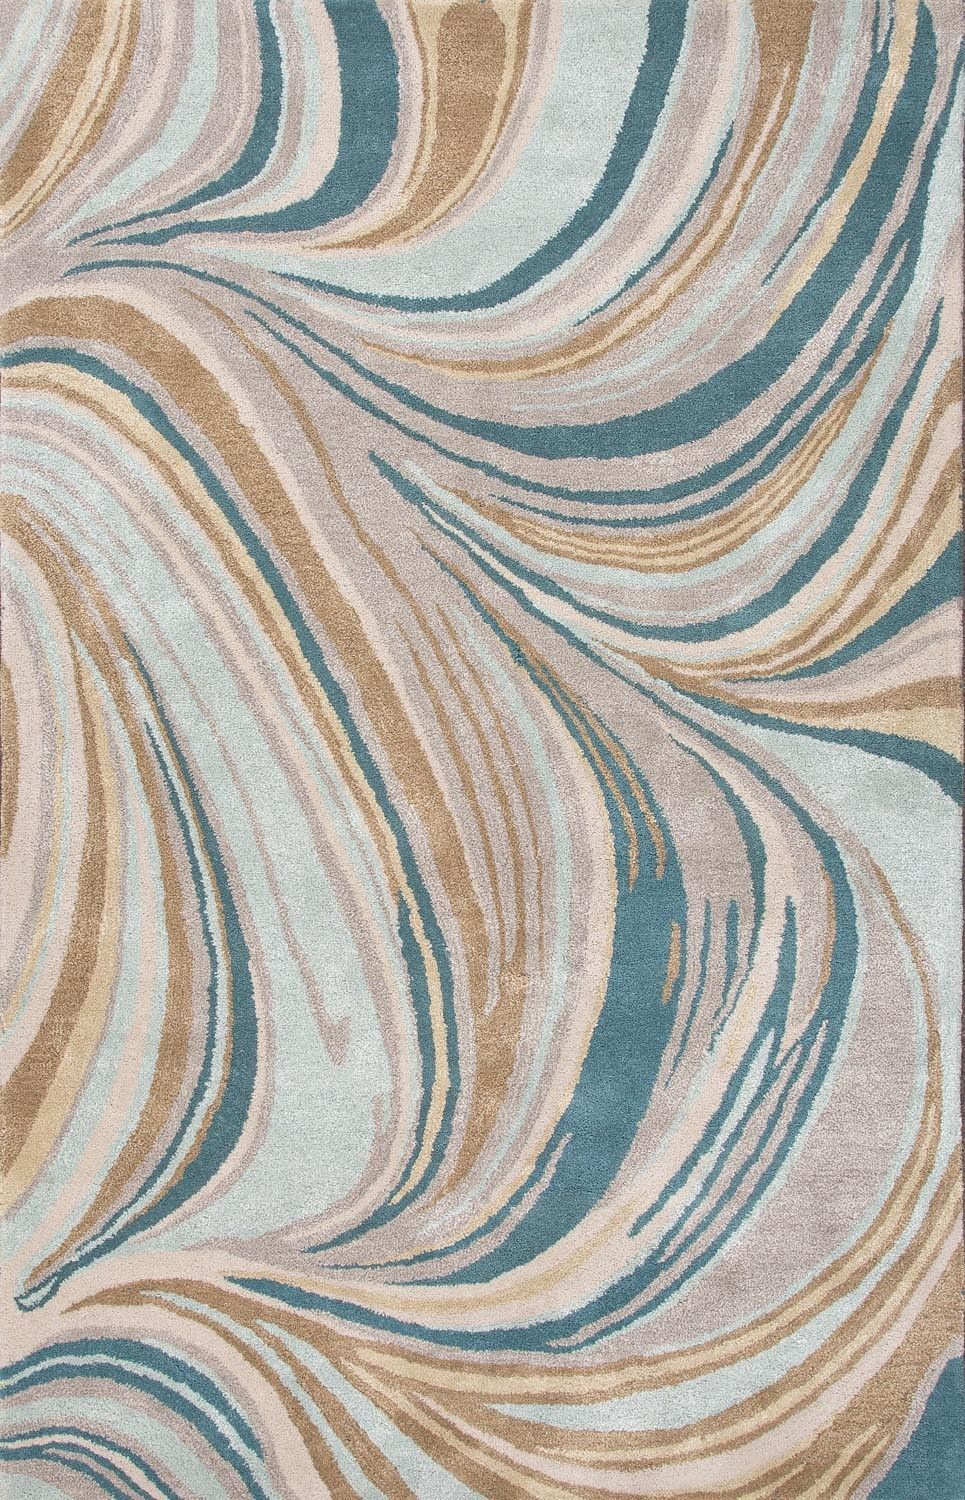 Cascade Blue Tan Abstract Area Rug Abstract Rug Rugs On Carpet Silk Area Rugs